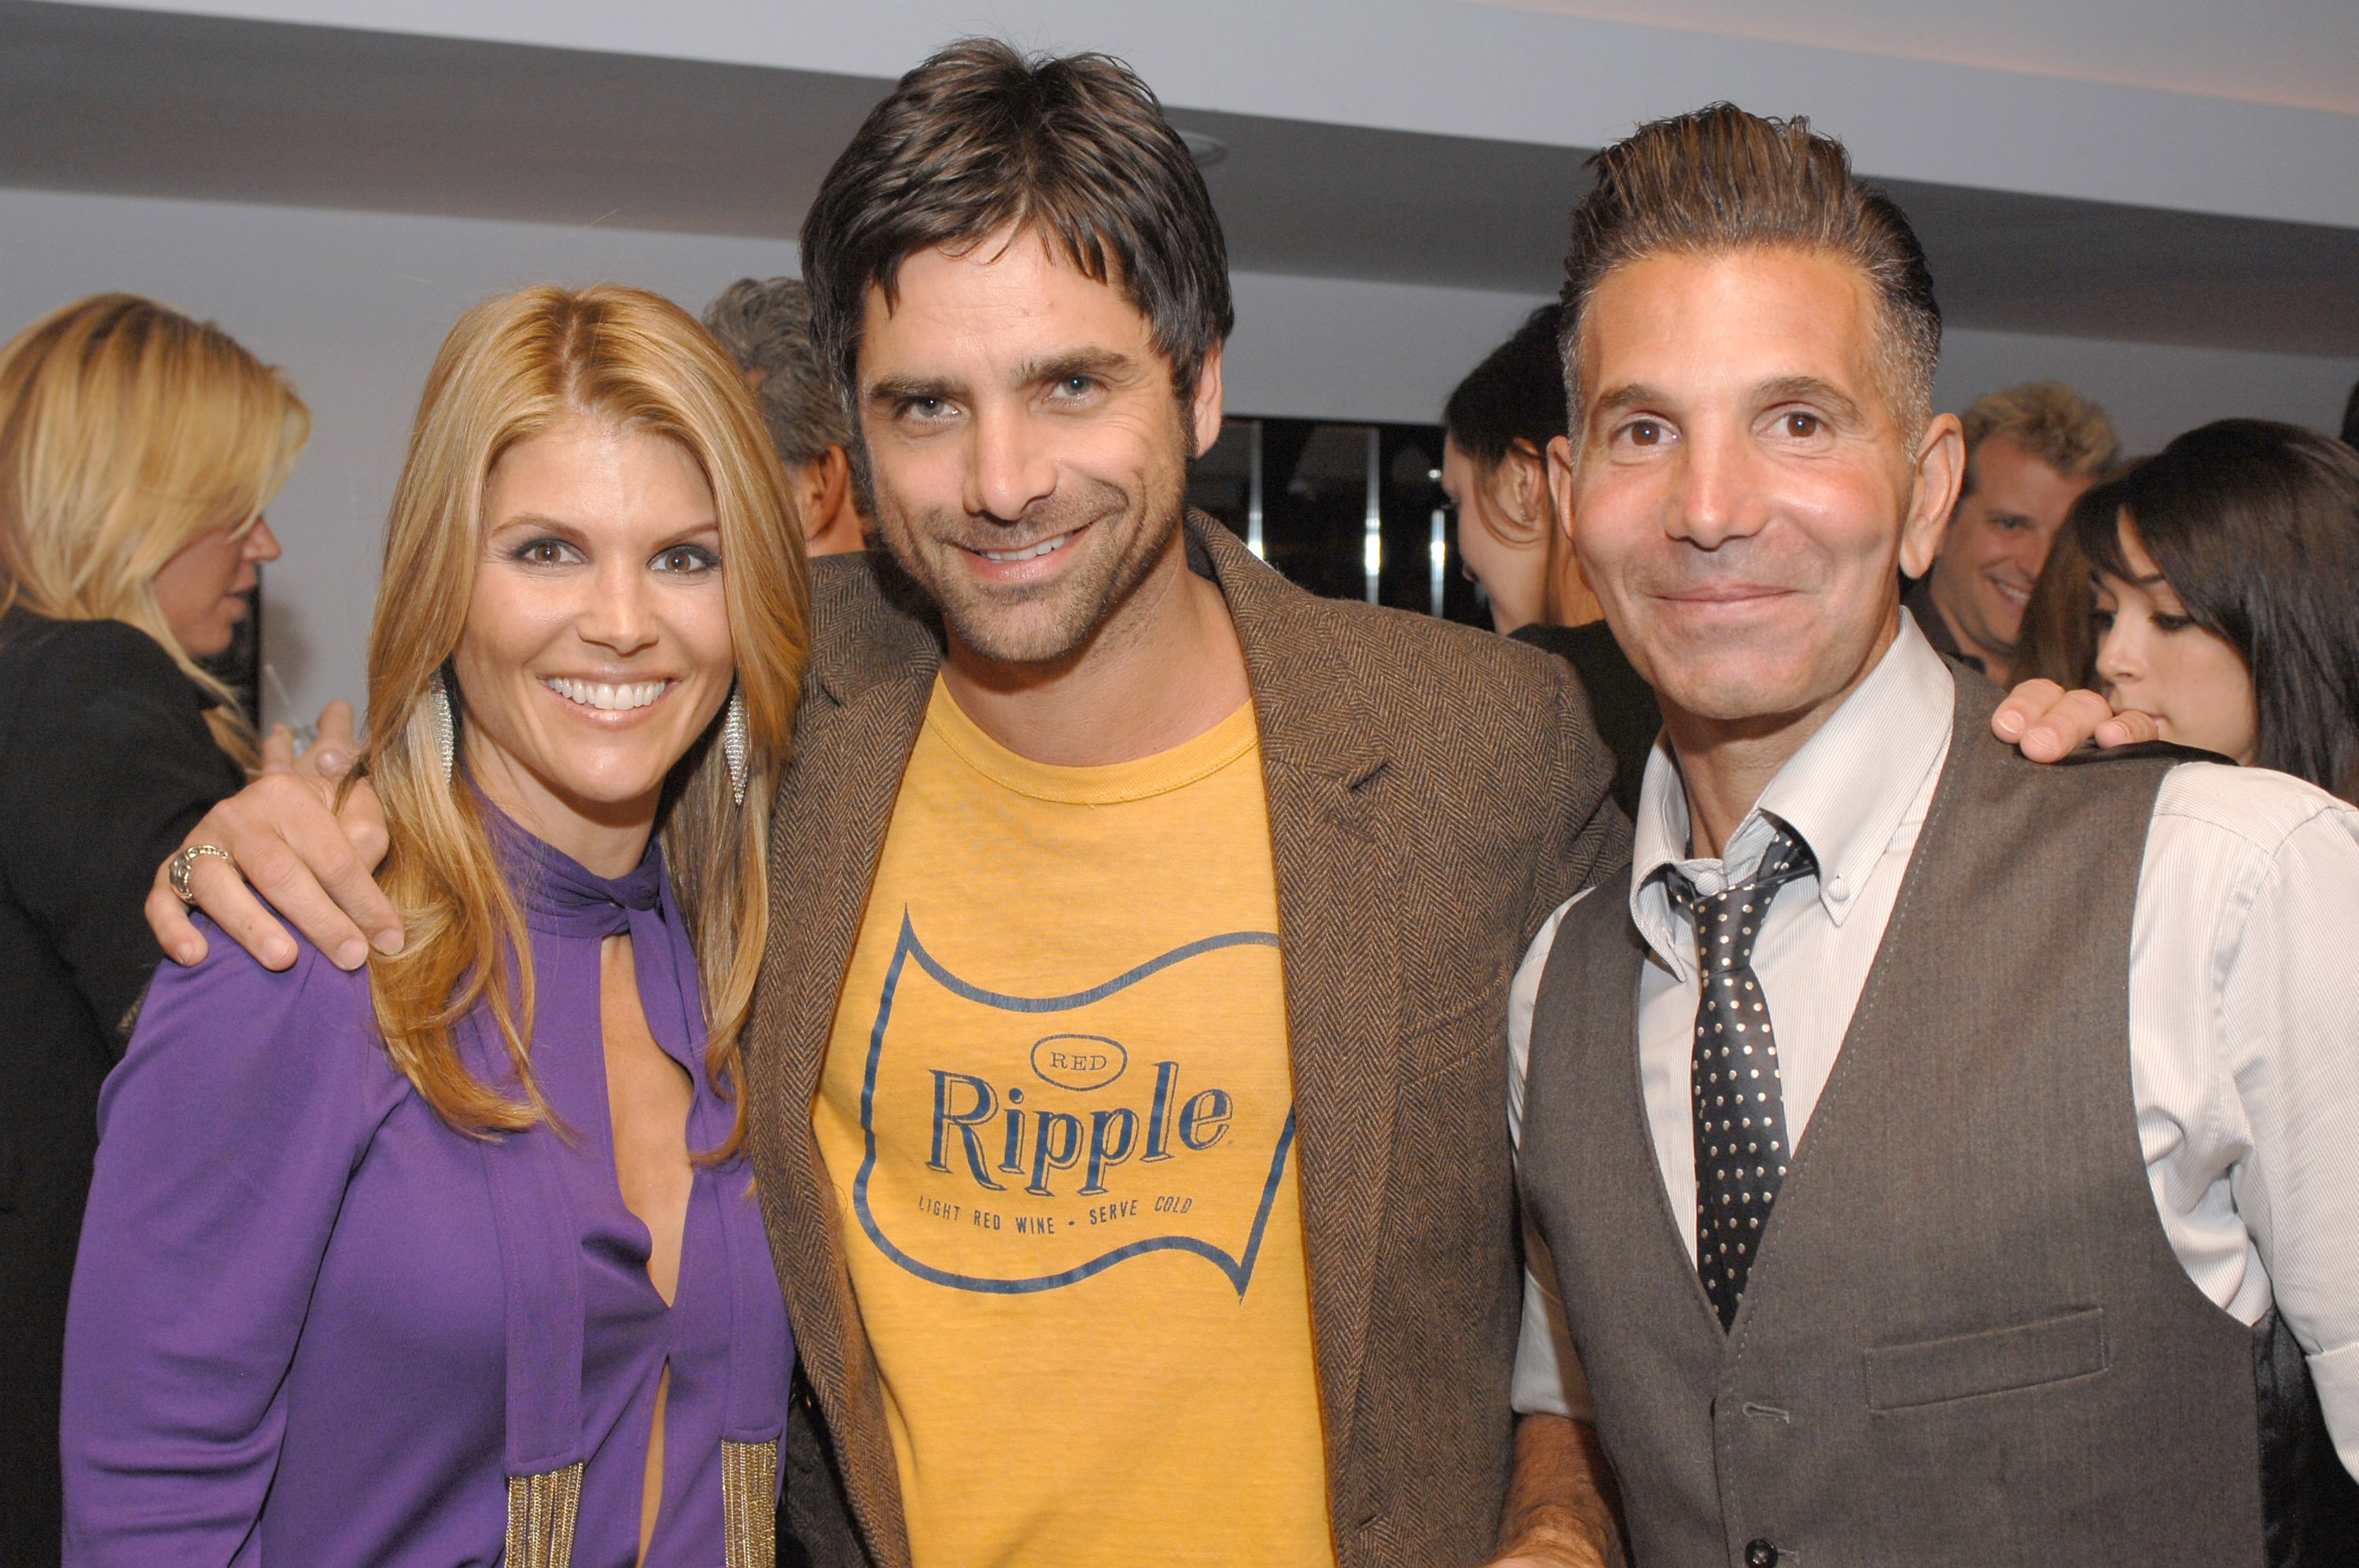 Lori Loughlin, John Stamos, and Mossimo Giannulli at a Target fashion party held in Giannulli's honor, October, 2006. | Photo: Getty Images.